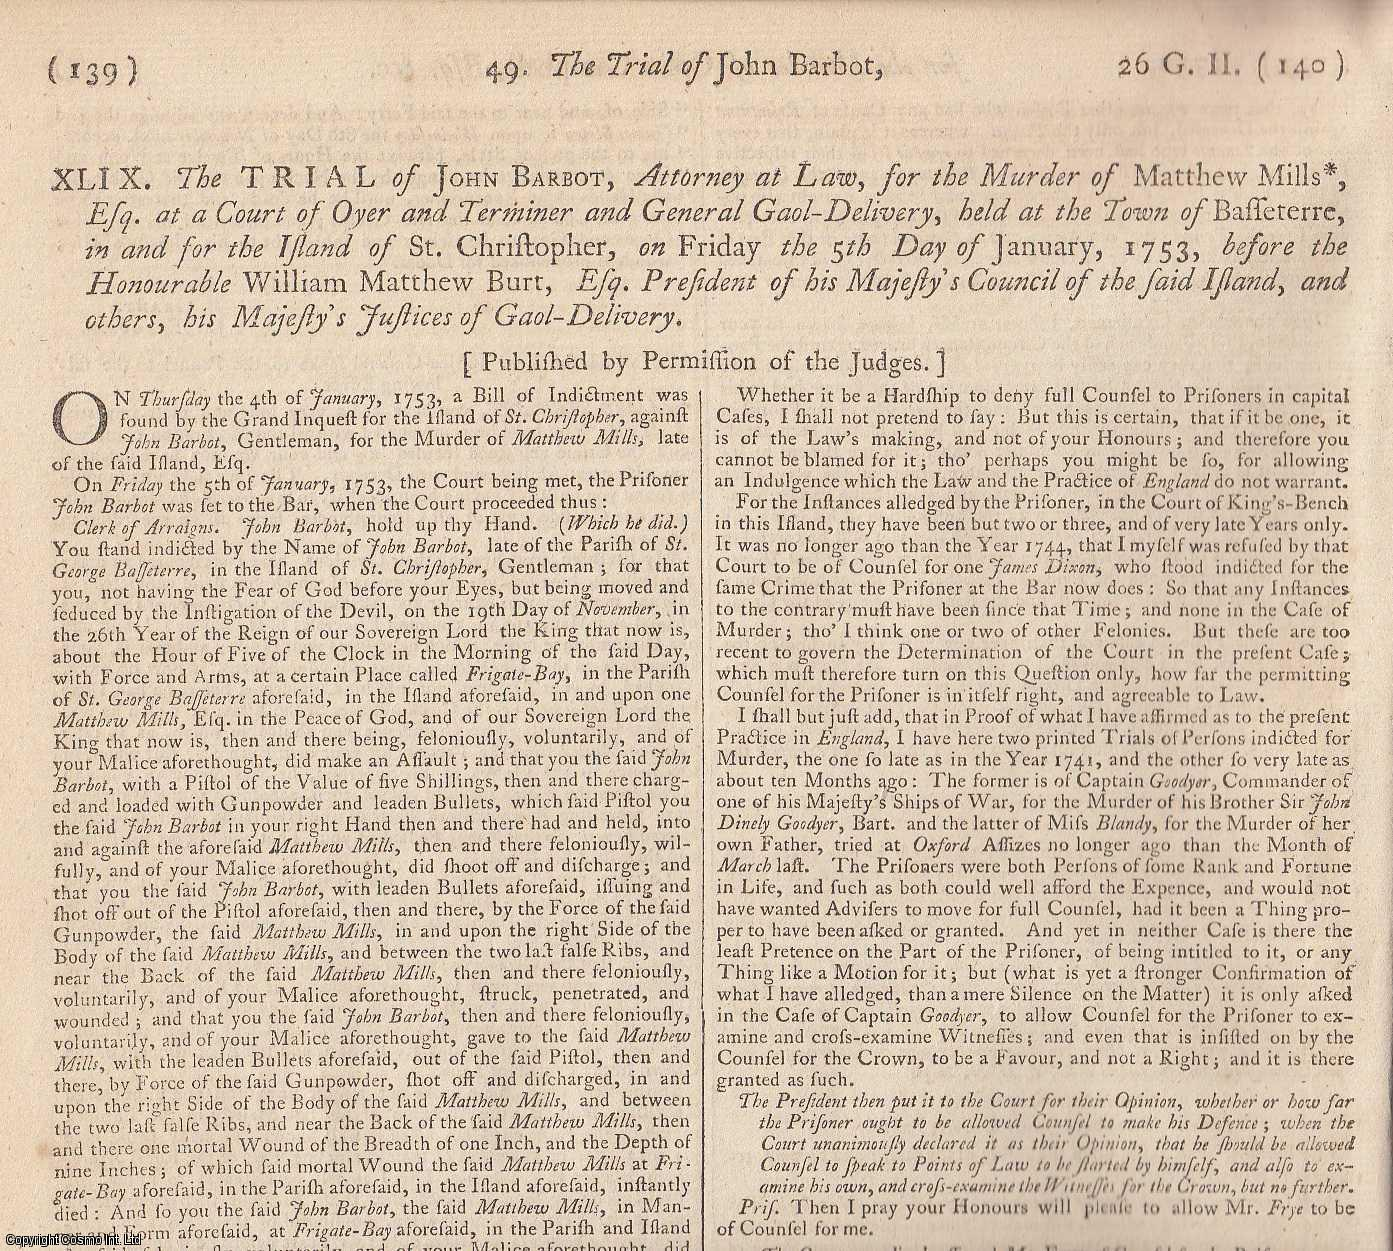 LEEWARD ISLANDS MURDER.  The Trial of John Barbot, Attorney at Law, for the Murder of Matthew Mills, Esq. at a Court of Oyer and Terminer and General Gaol-Delivery, held at the Town of Basseterre, in and for the Island of St. Christopher, on Friday the 5th Day of January, 1753, before the Honourable William Matthew Burt, Esq. President of his Majesty's Council of the said Island, and others, his Majesty's Justices of Gaol-Delivery.  Published by Permission of the Judges., [Trial].